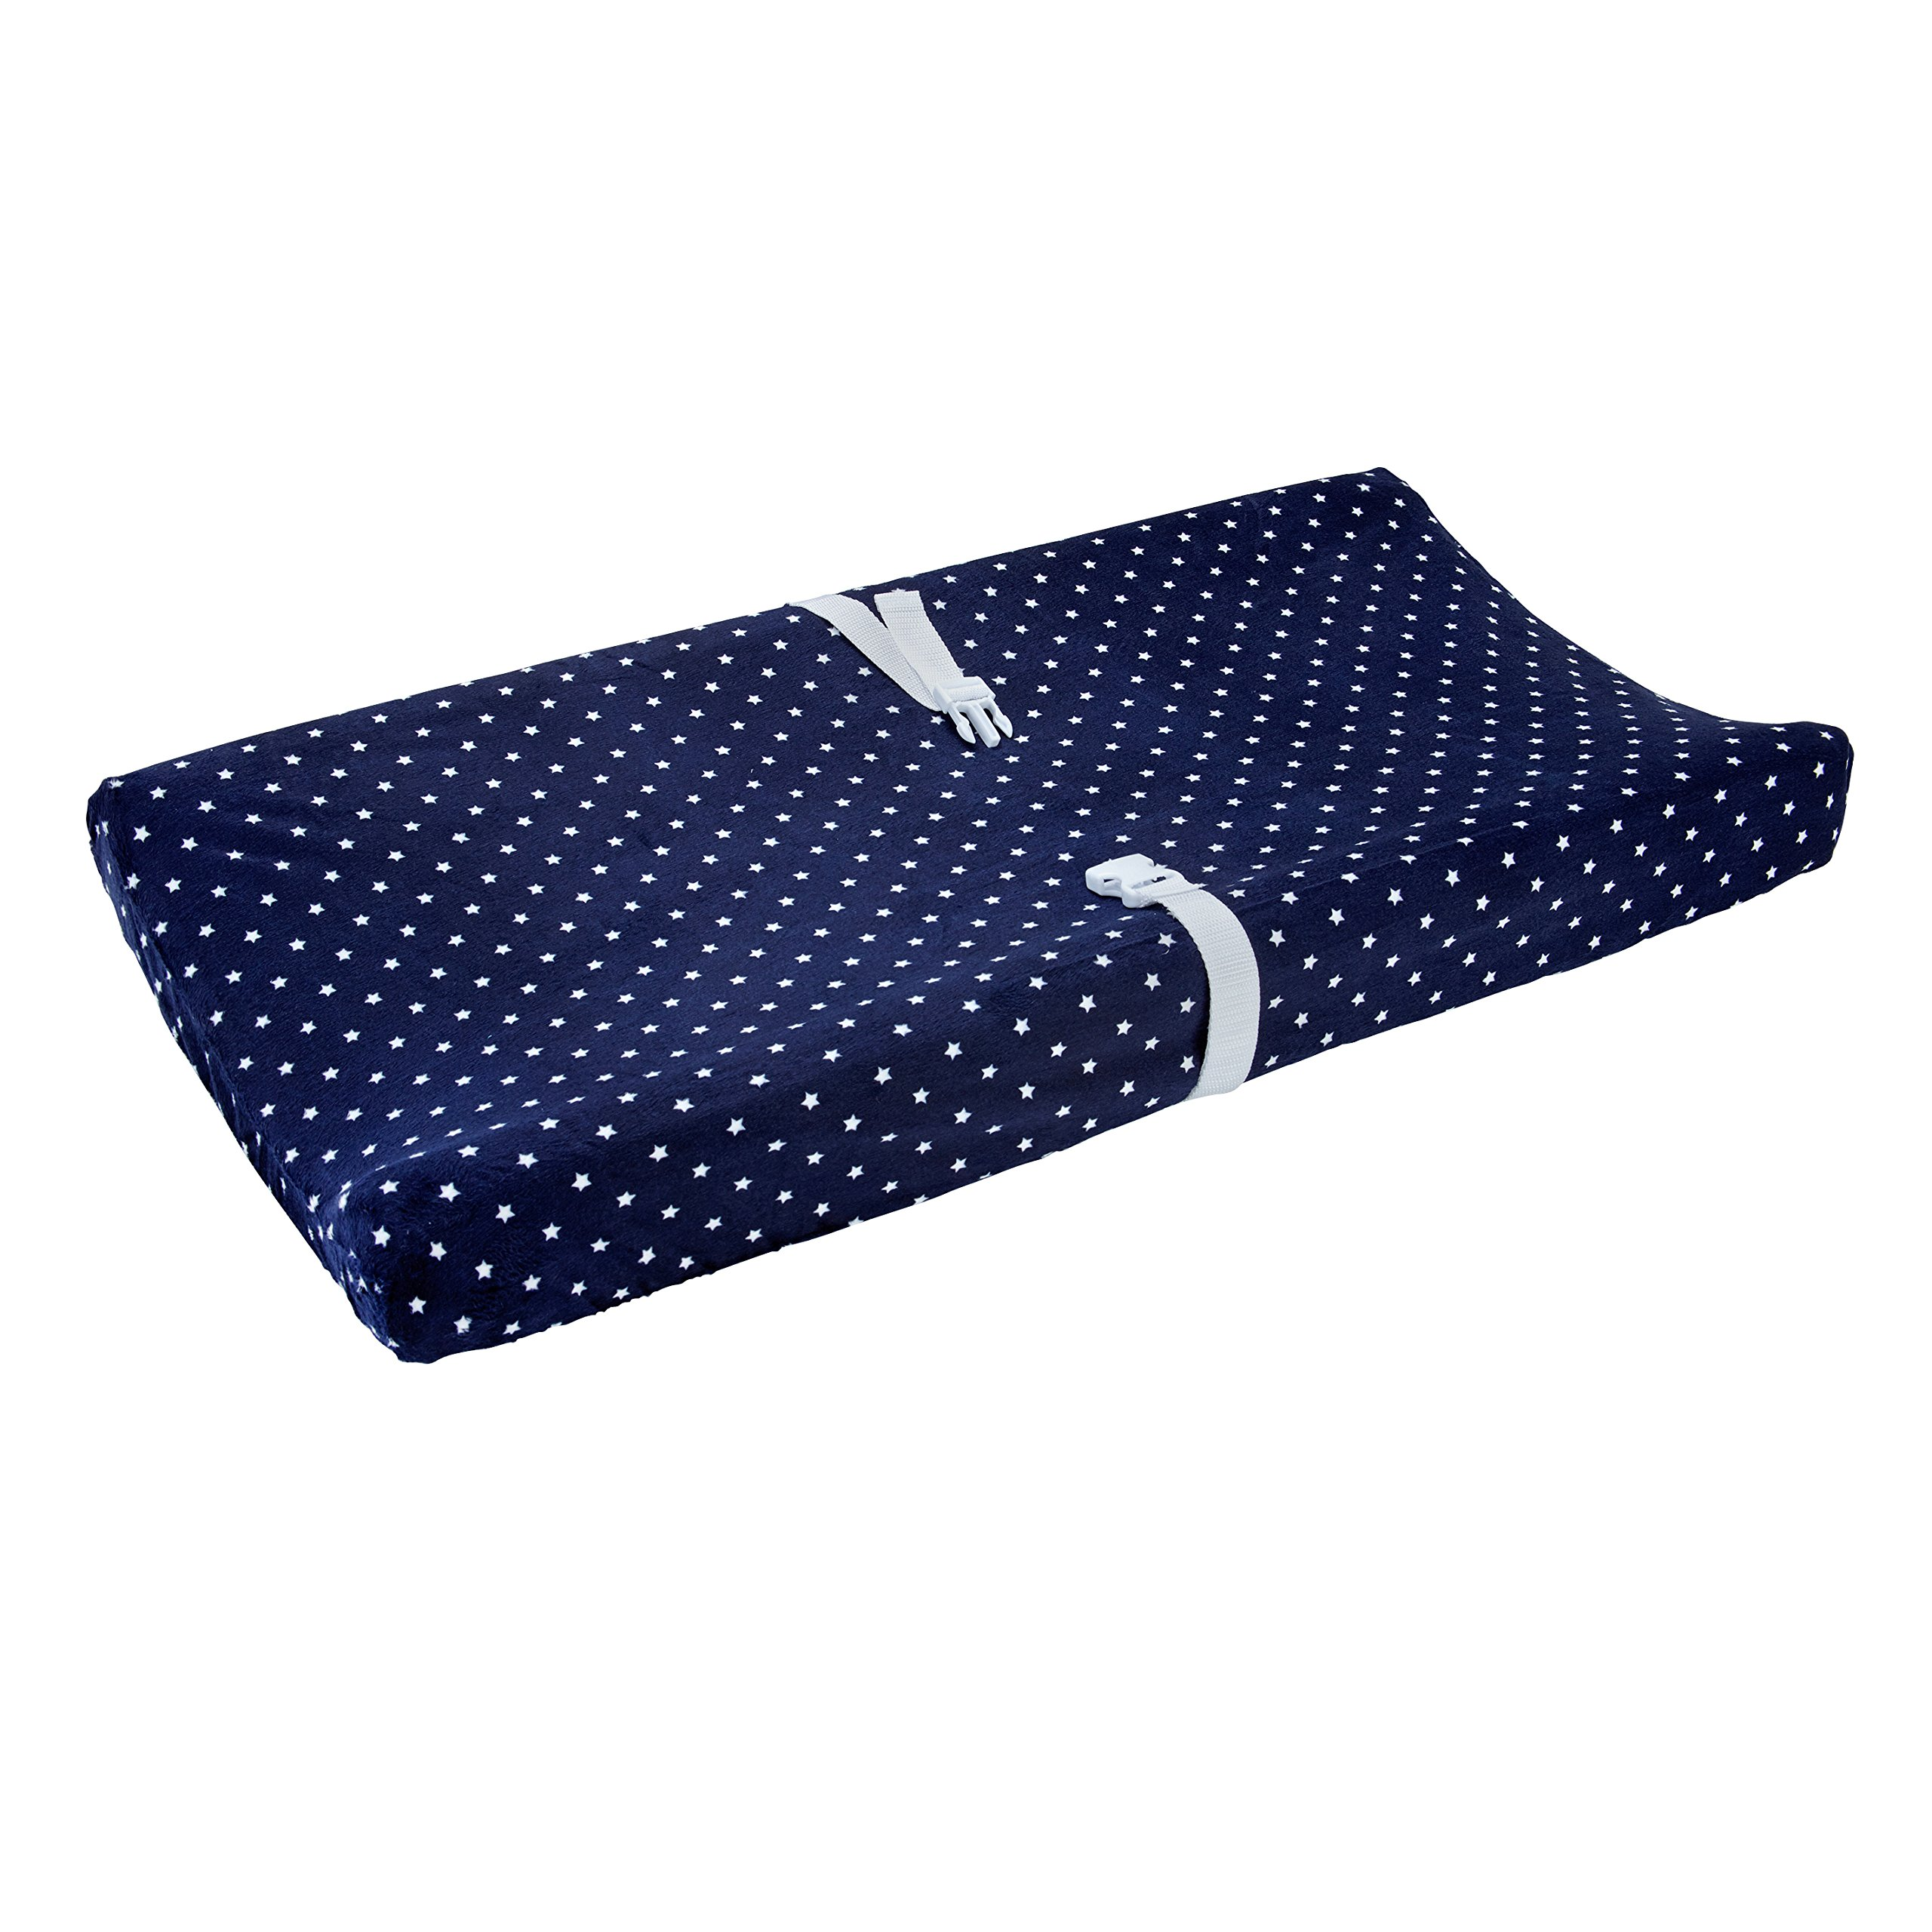 Carter's Changing Pad Cover, Navy Stars, One Size by Carter's